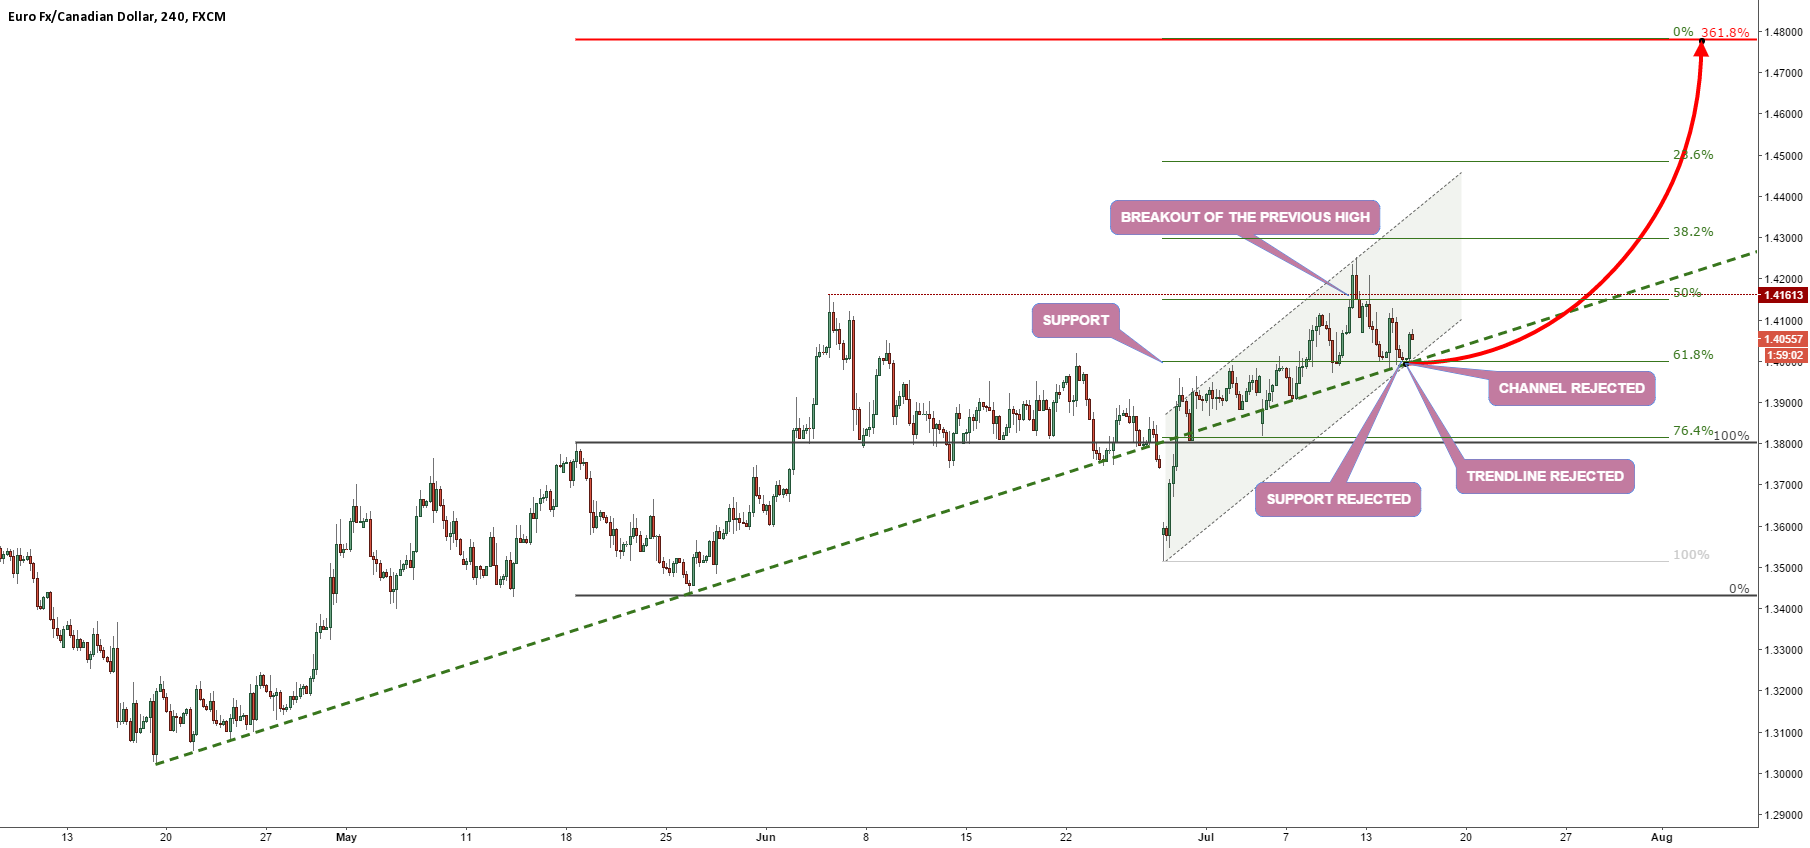 EURCAD REJECTED SUPPORT